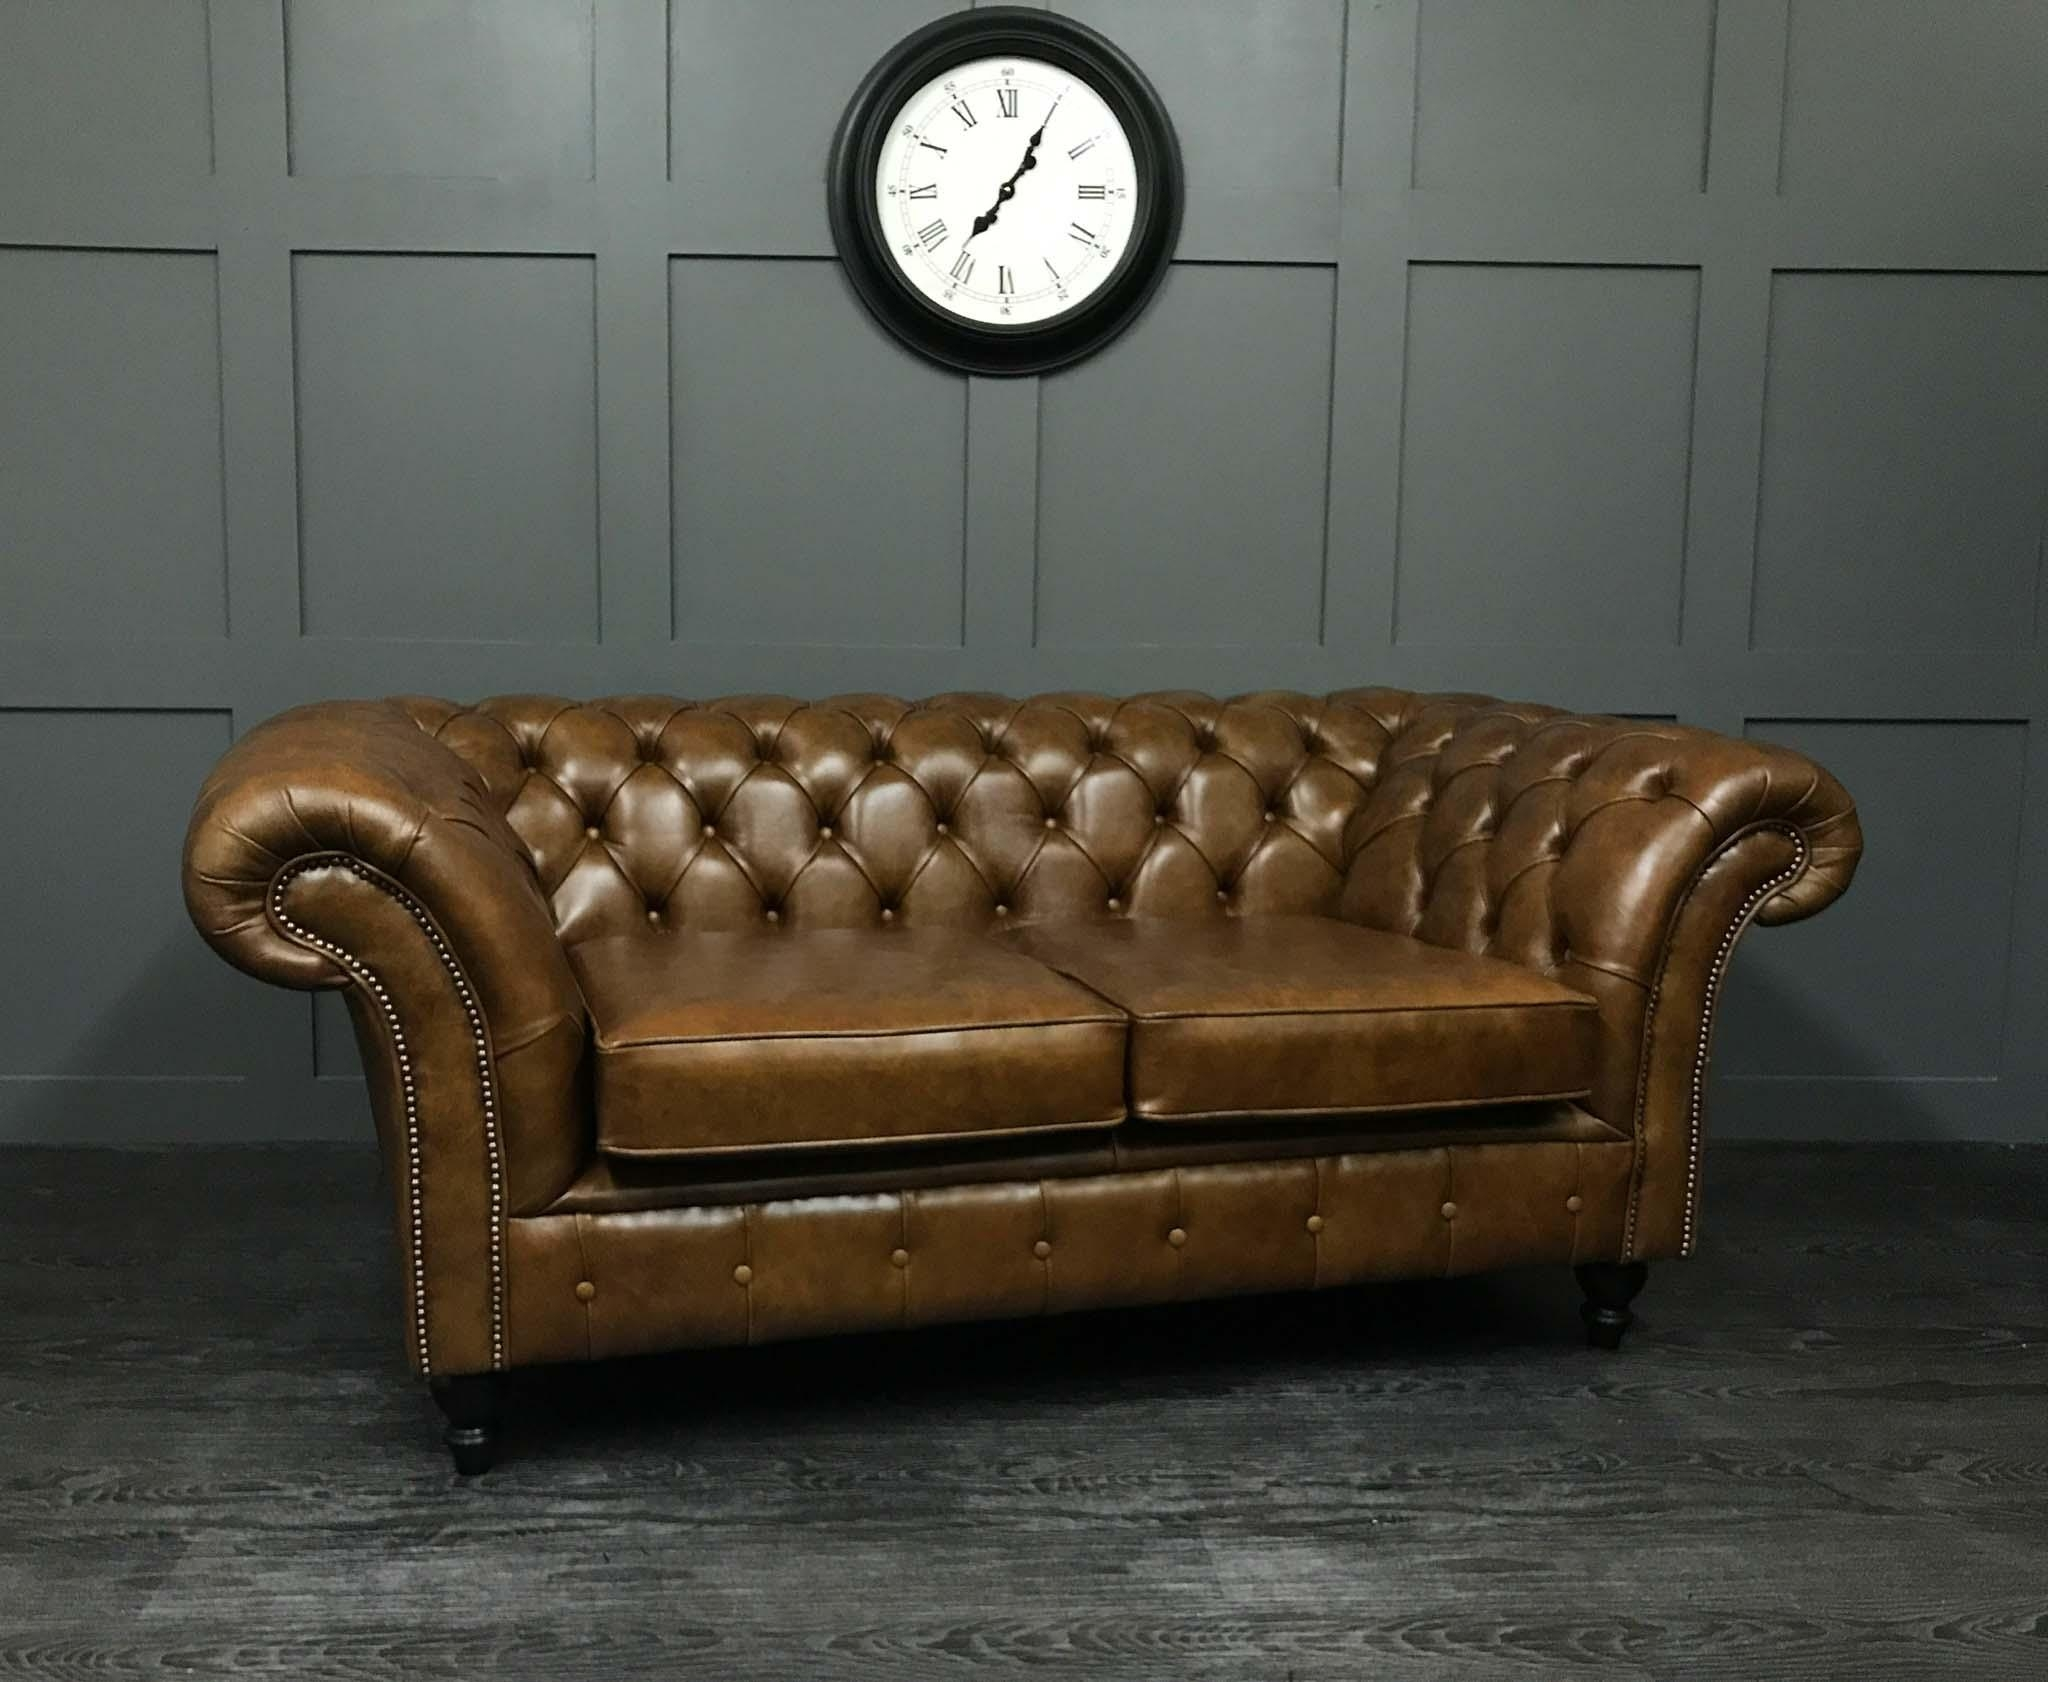 Chesterfield Sofas Archives – Timeless Sofas – Handmade Leather For Leather Chesterfield Sofas (View 13 of 20)